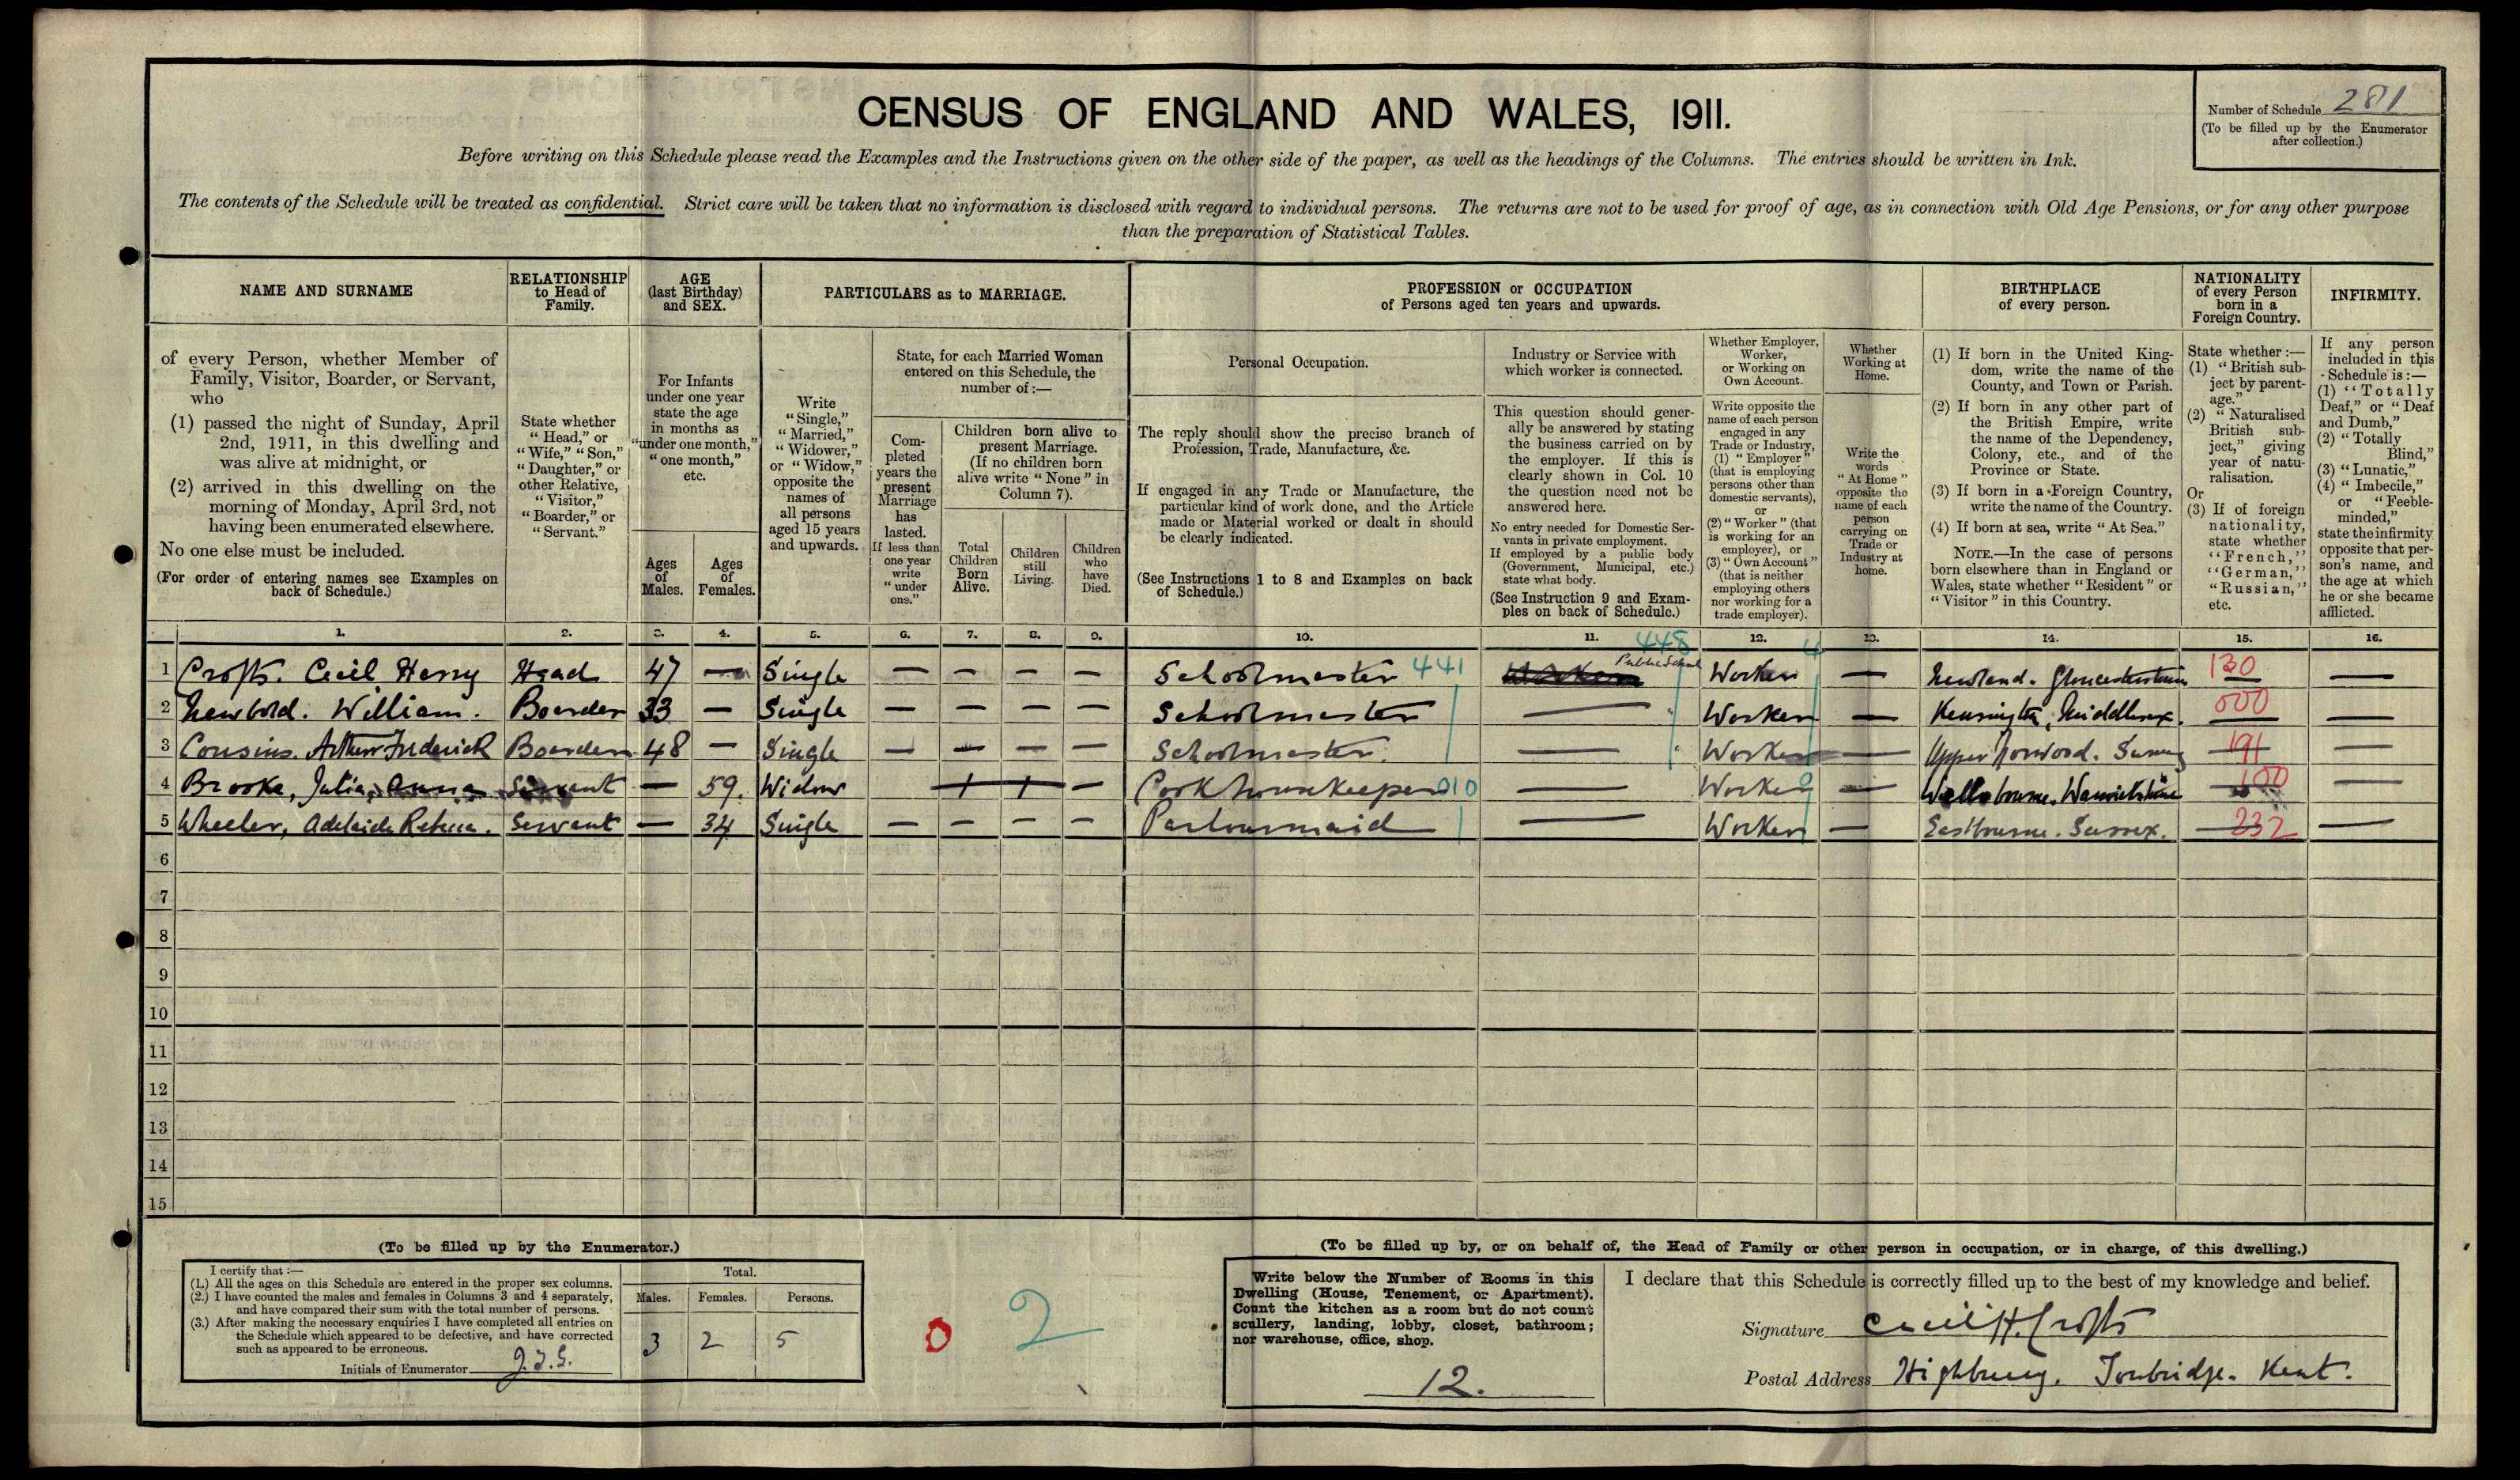 Harry Cecil Crofts on the 1911 census